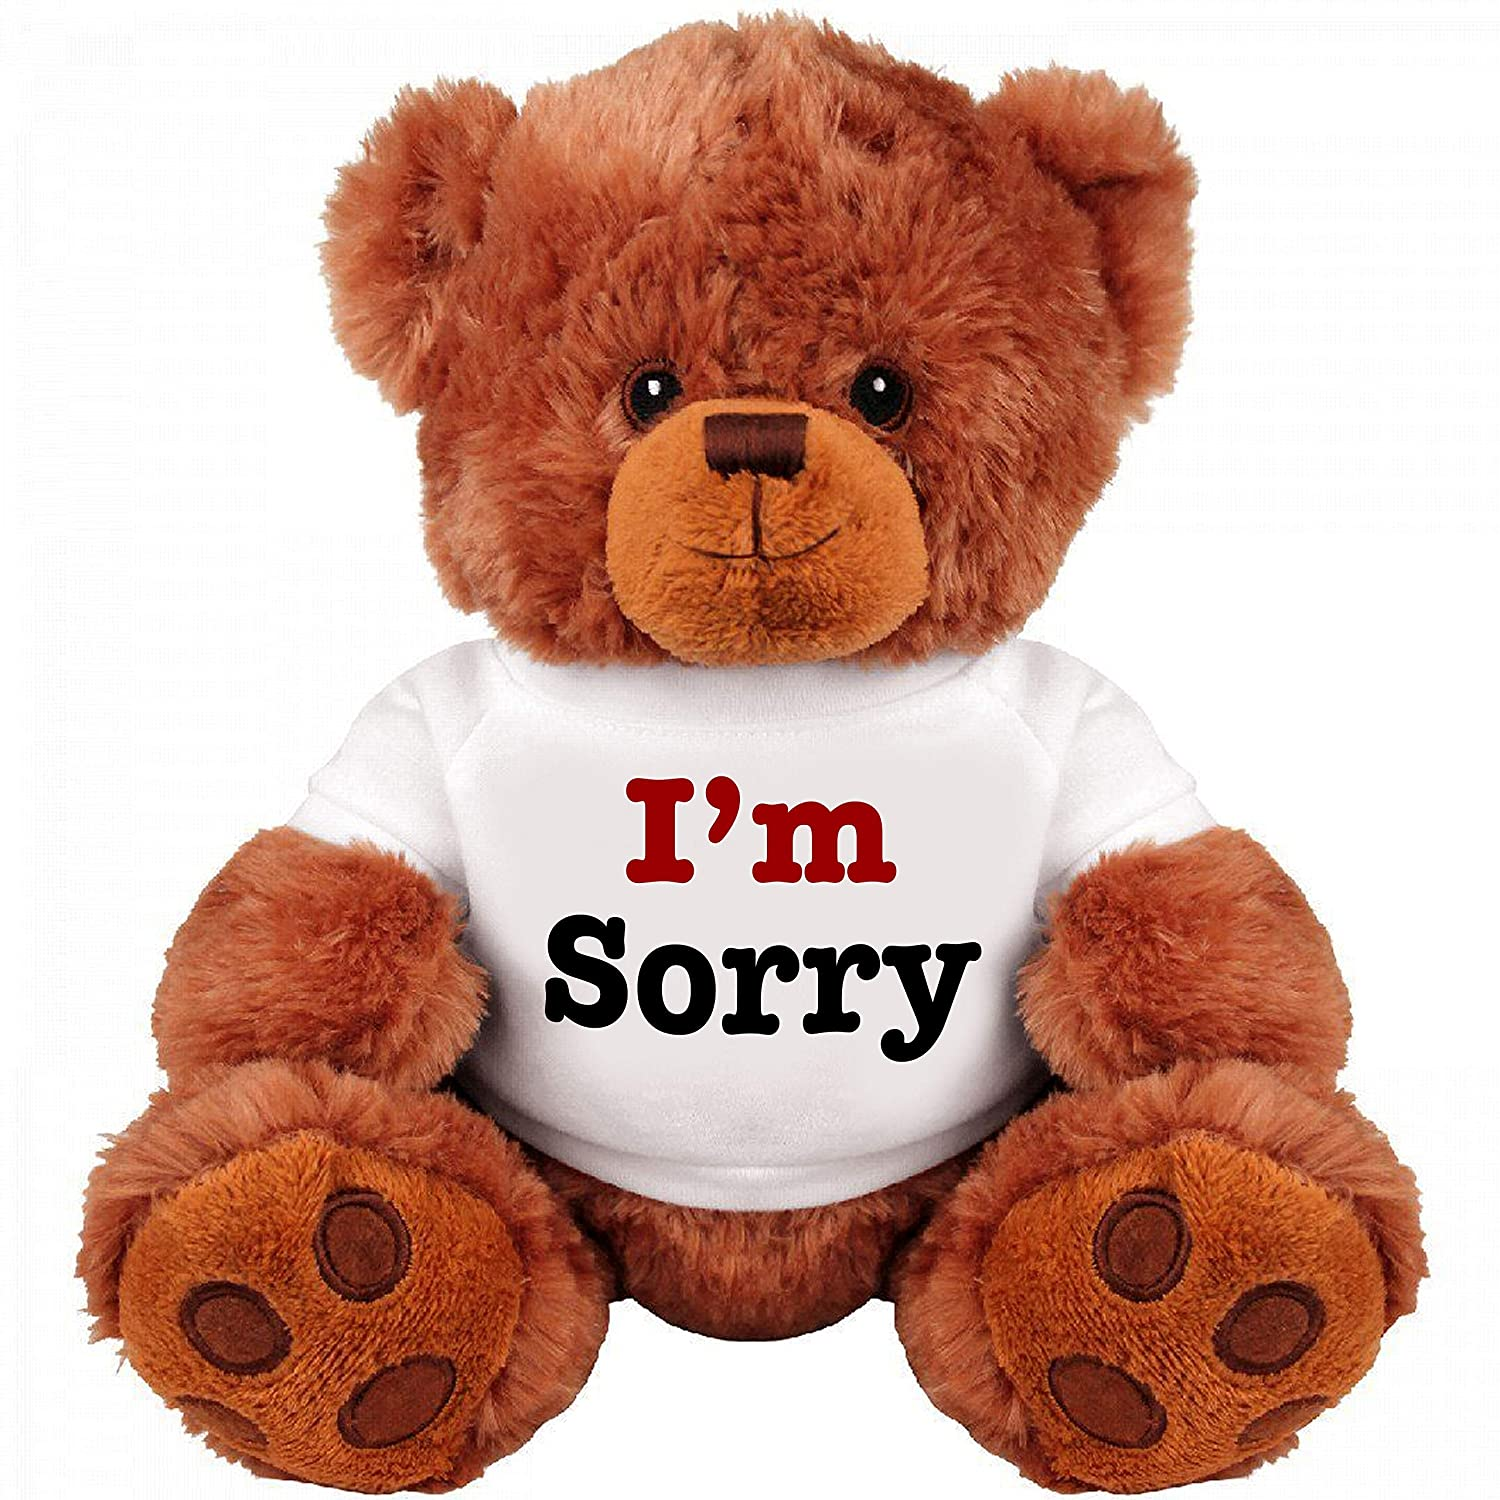 I Am Sorry Teddy Bear - Cute and Cuddly : Funny Teddy Bear Couple Gift : Romantic Medium Teddy Bear Stuffed Animal SinMan